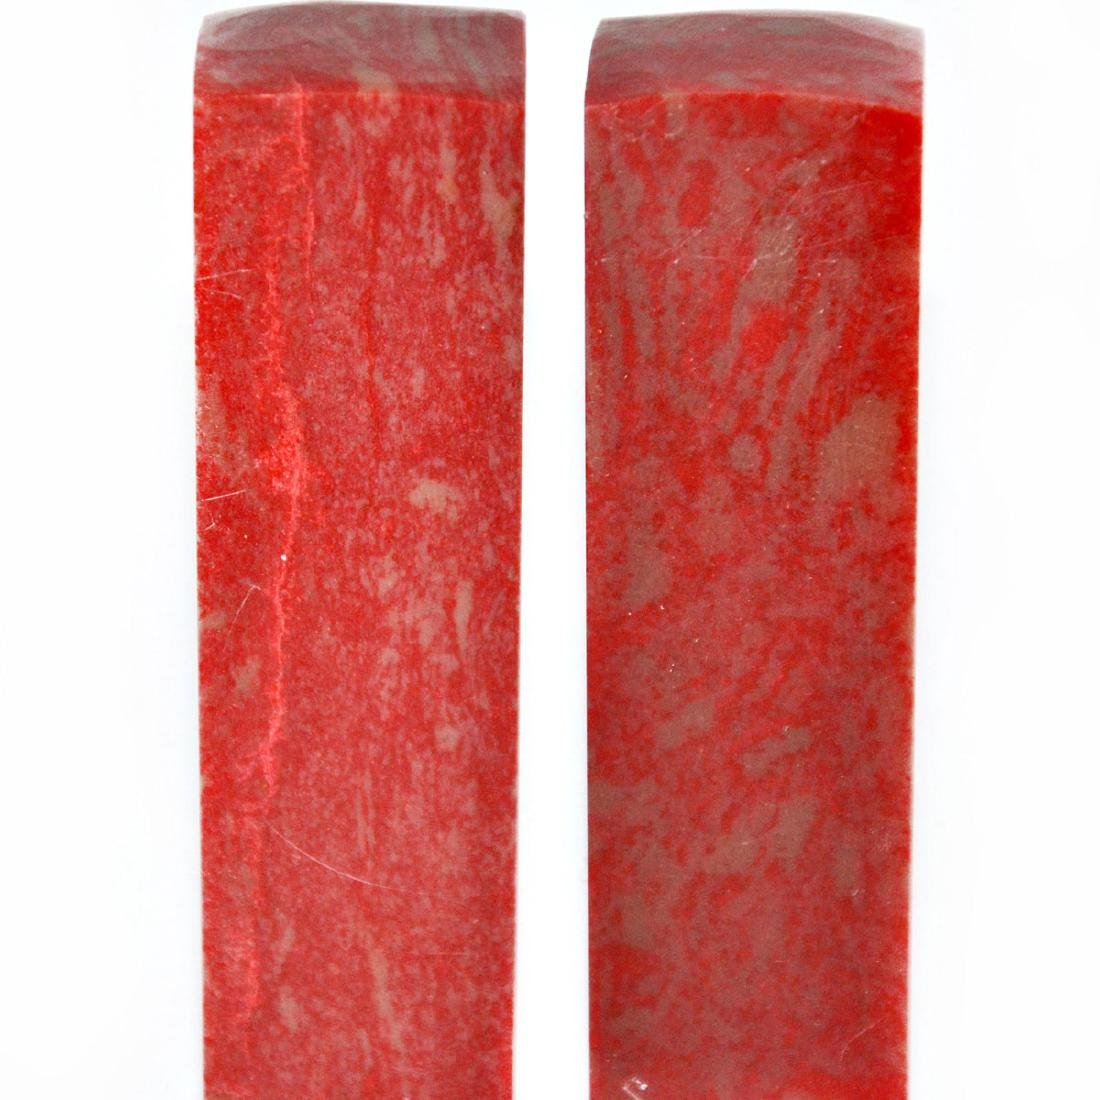 A Pair of Columnar Ji Xue Stone Seals - 8